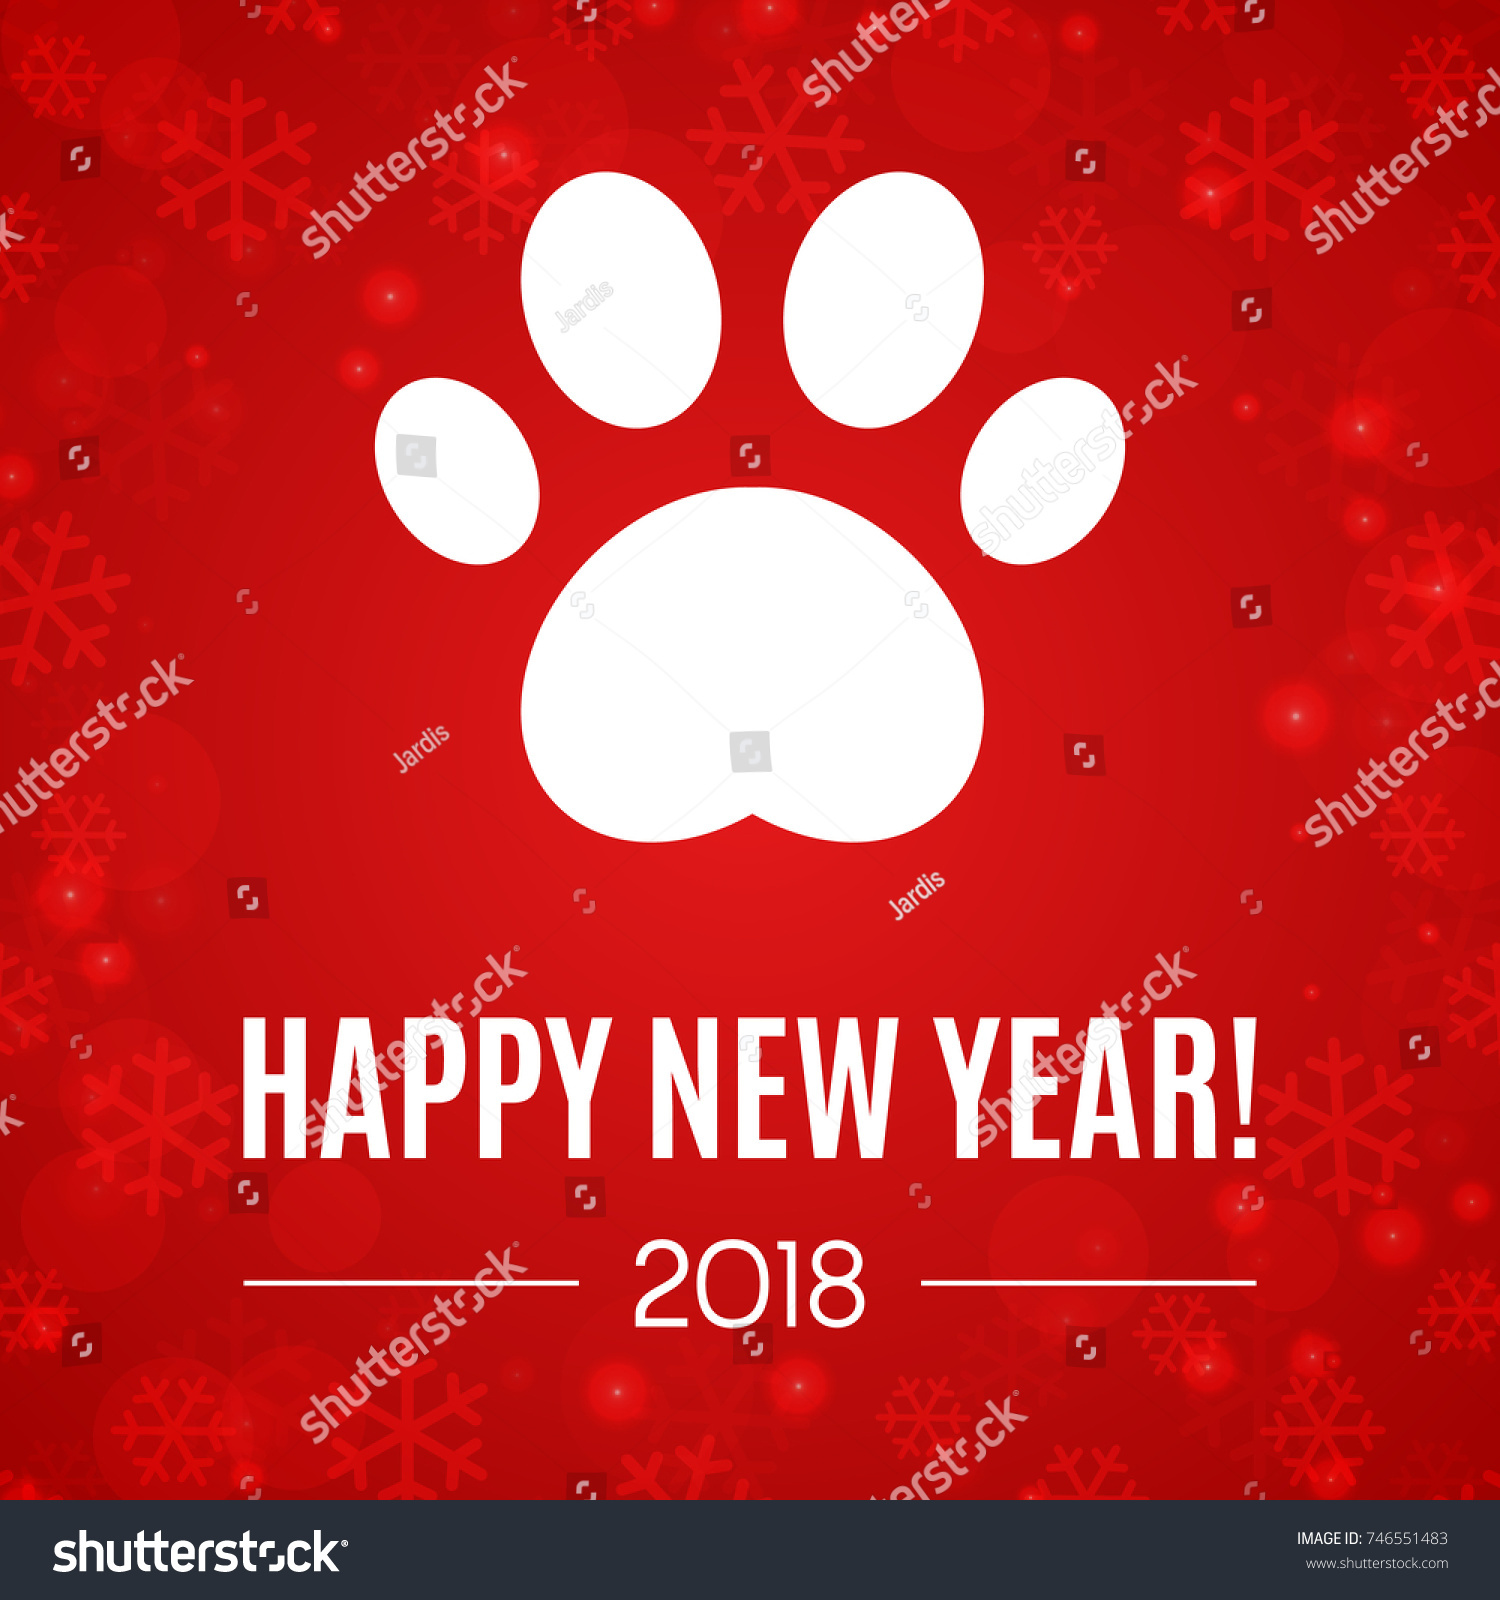 2018 new year greeting card with paw print vector illustration brochure design template